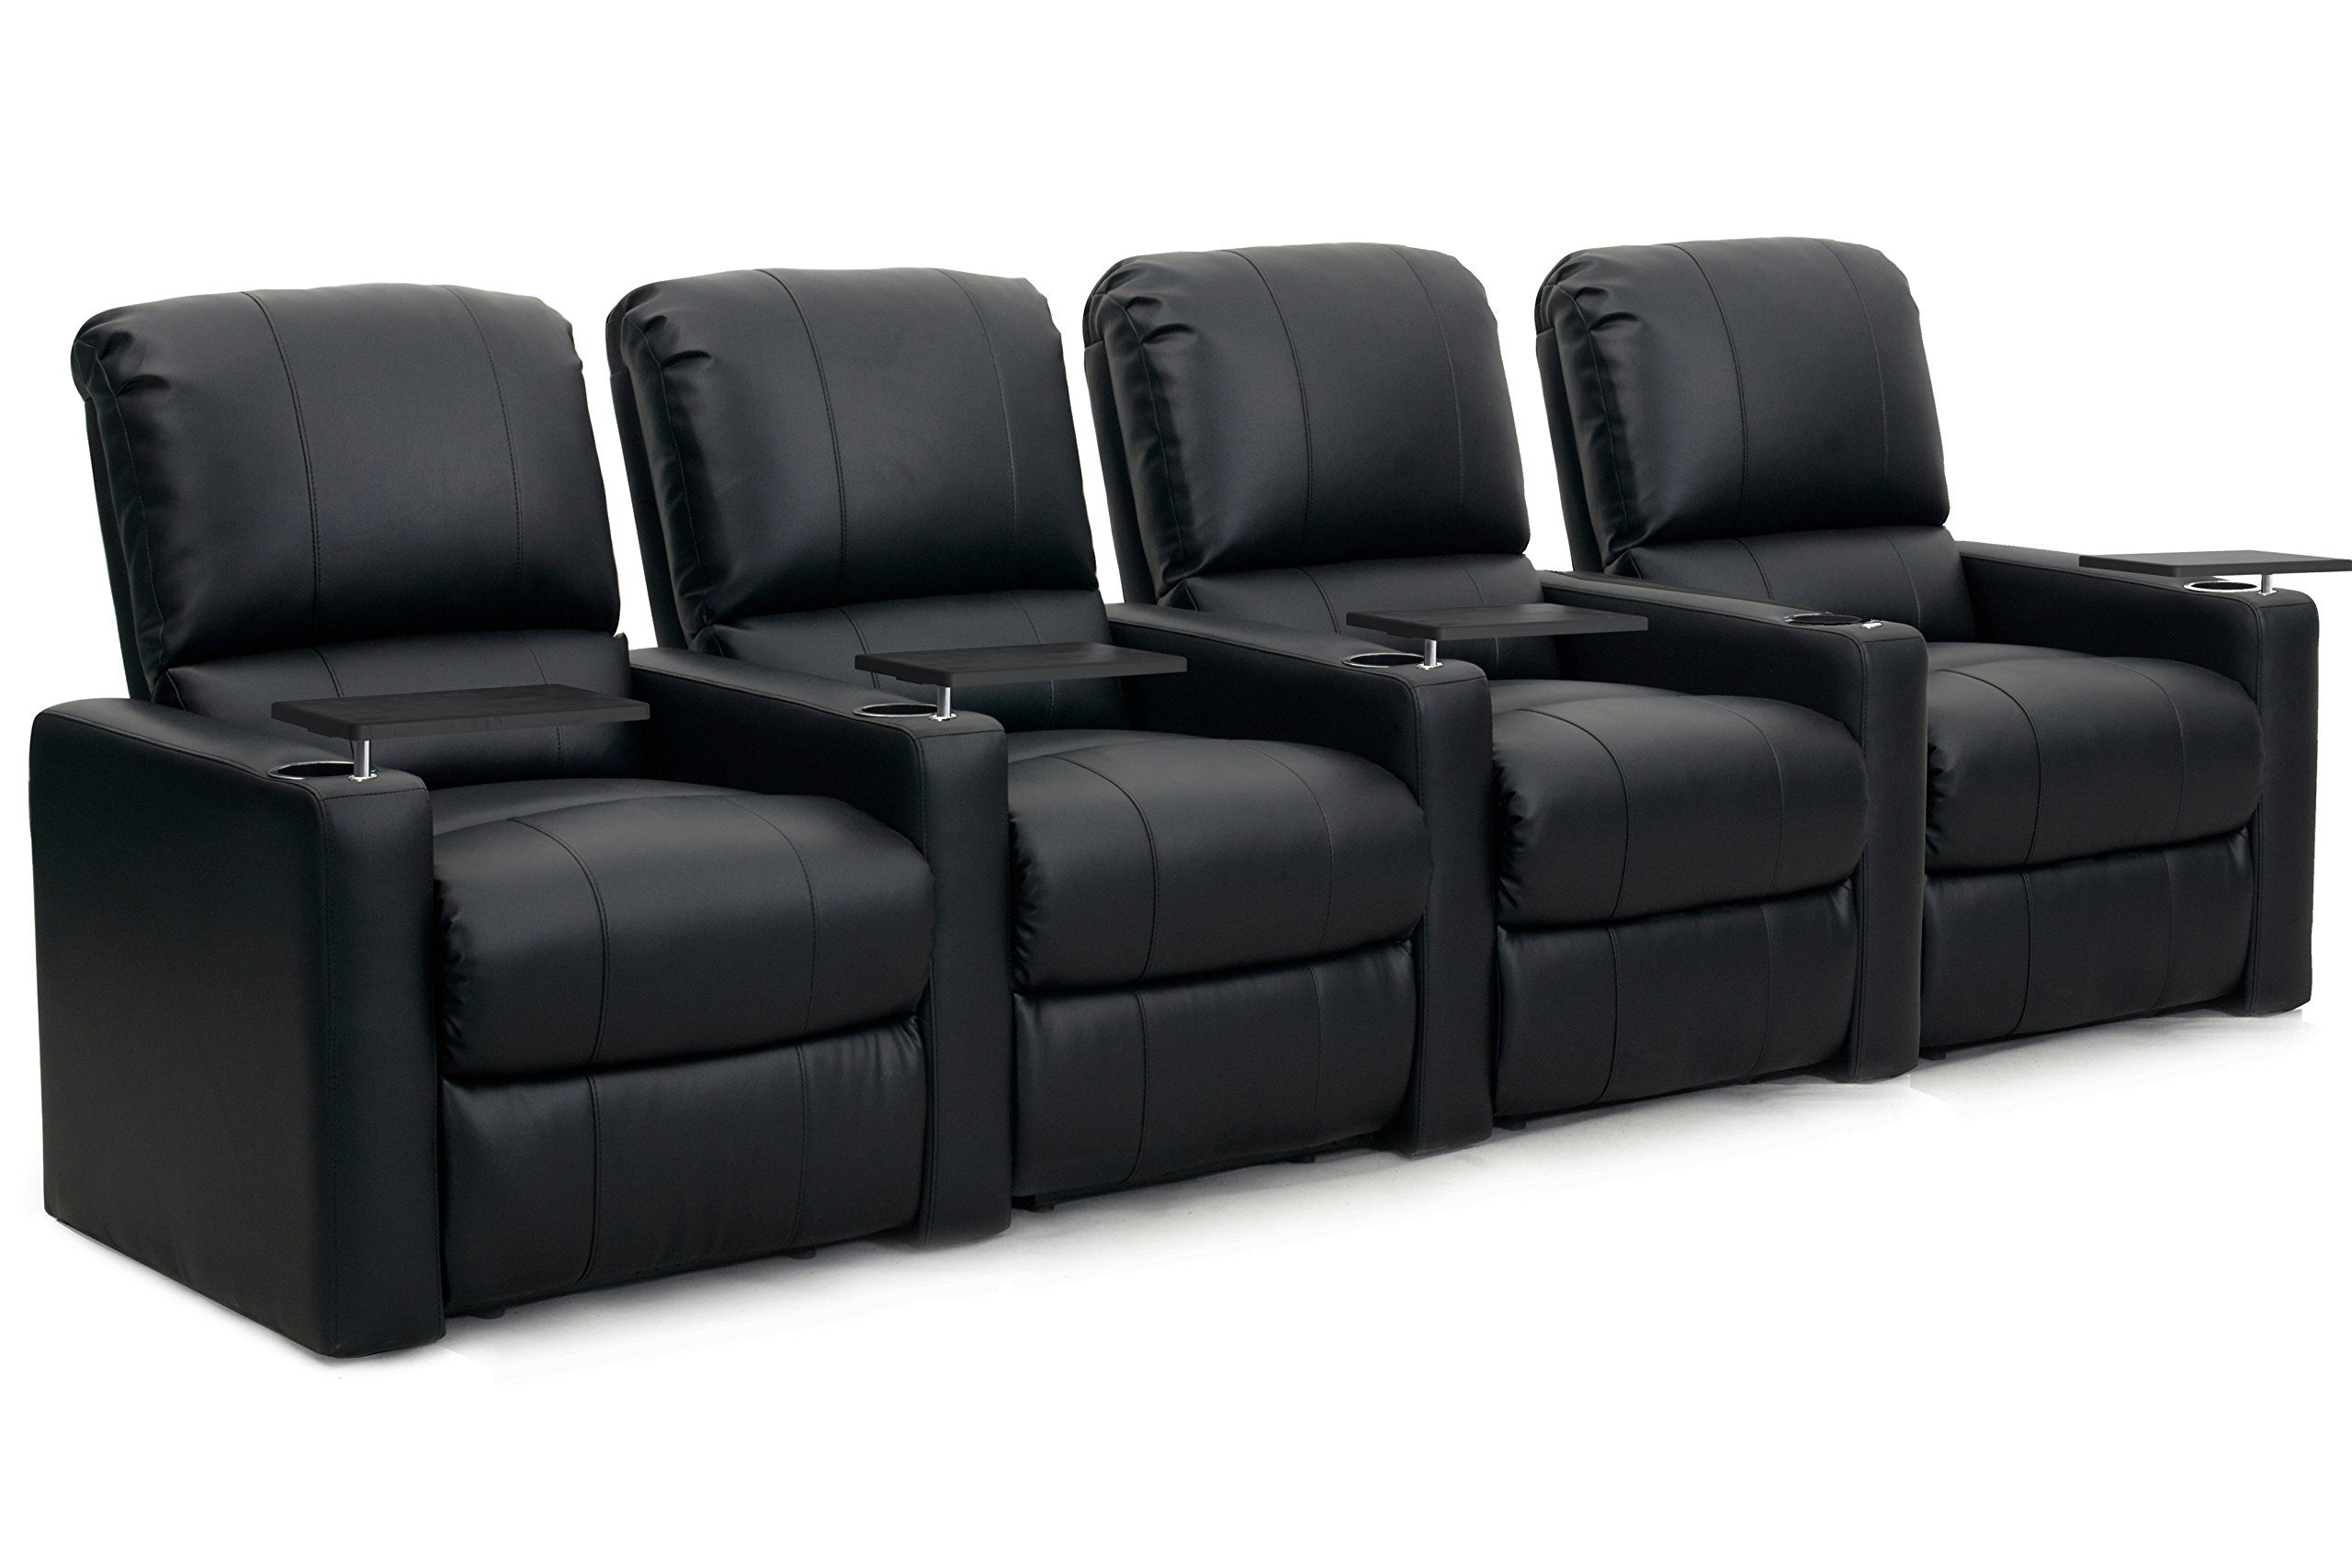 Octane Seating Chargerr4smbndbl Octane Charger Xs300 Leather Home Theater Recliner Set Row Of 4 B Home Theater Furniture Home Theater Seating Theater Recliners